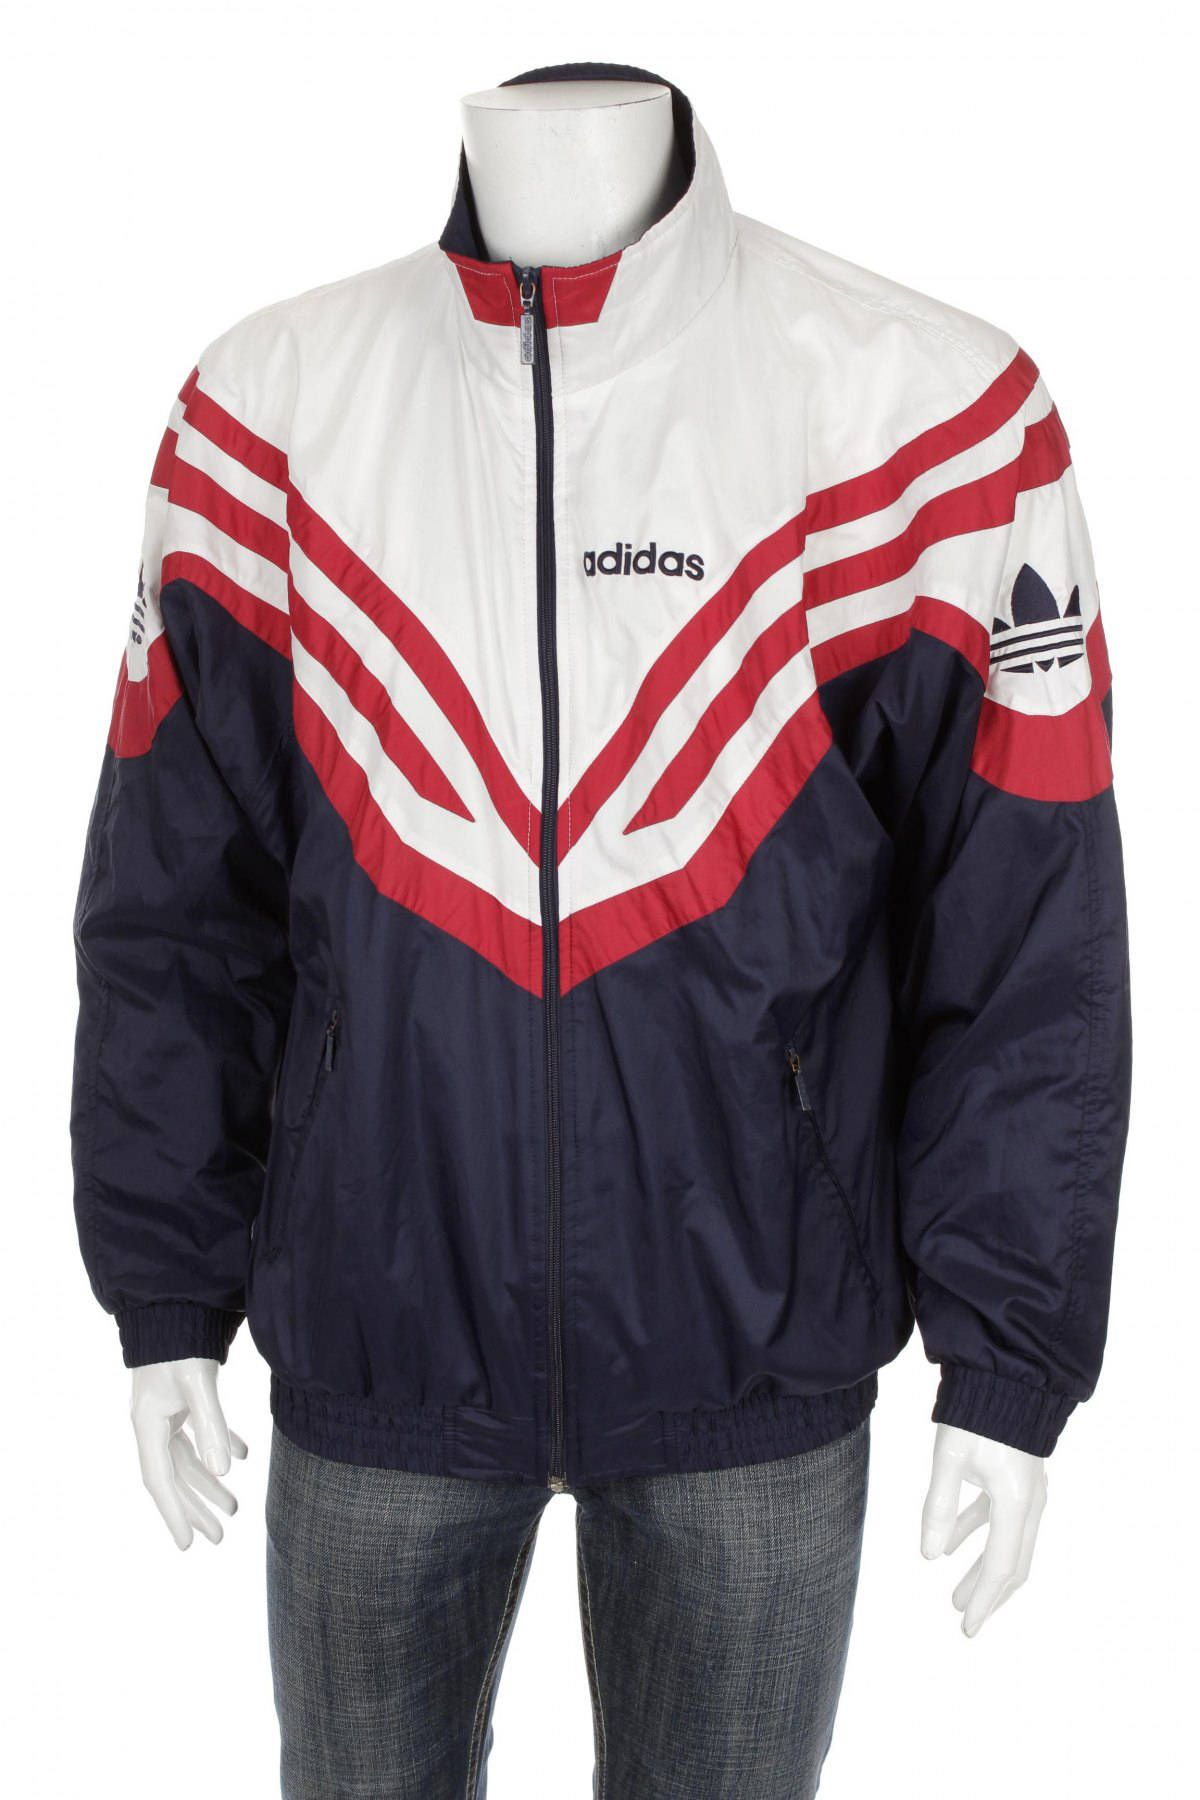 2d64376a0524 Vintage 90s Adidas Trefoil Windbreaker Tracksuit top jacket Blue Red White  Size L D7 by VapeoVintage on Etsy